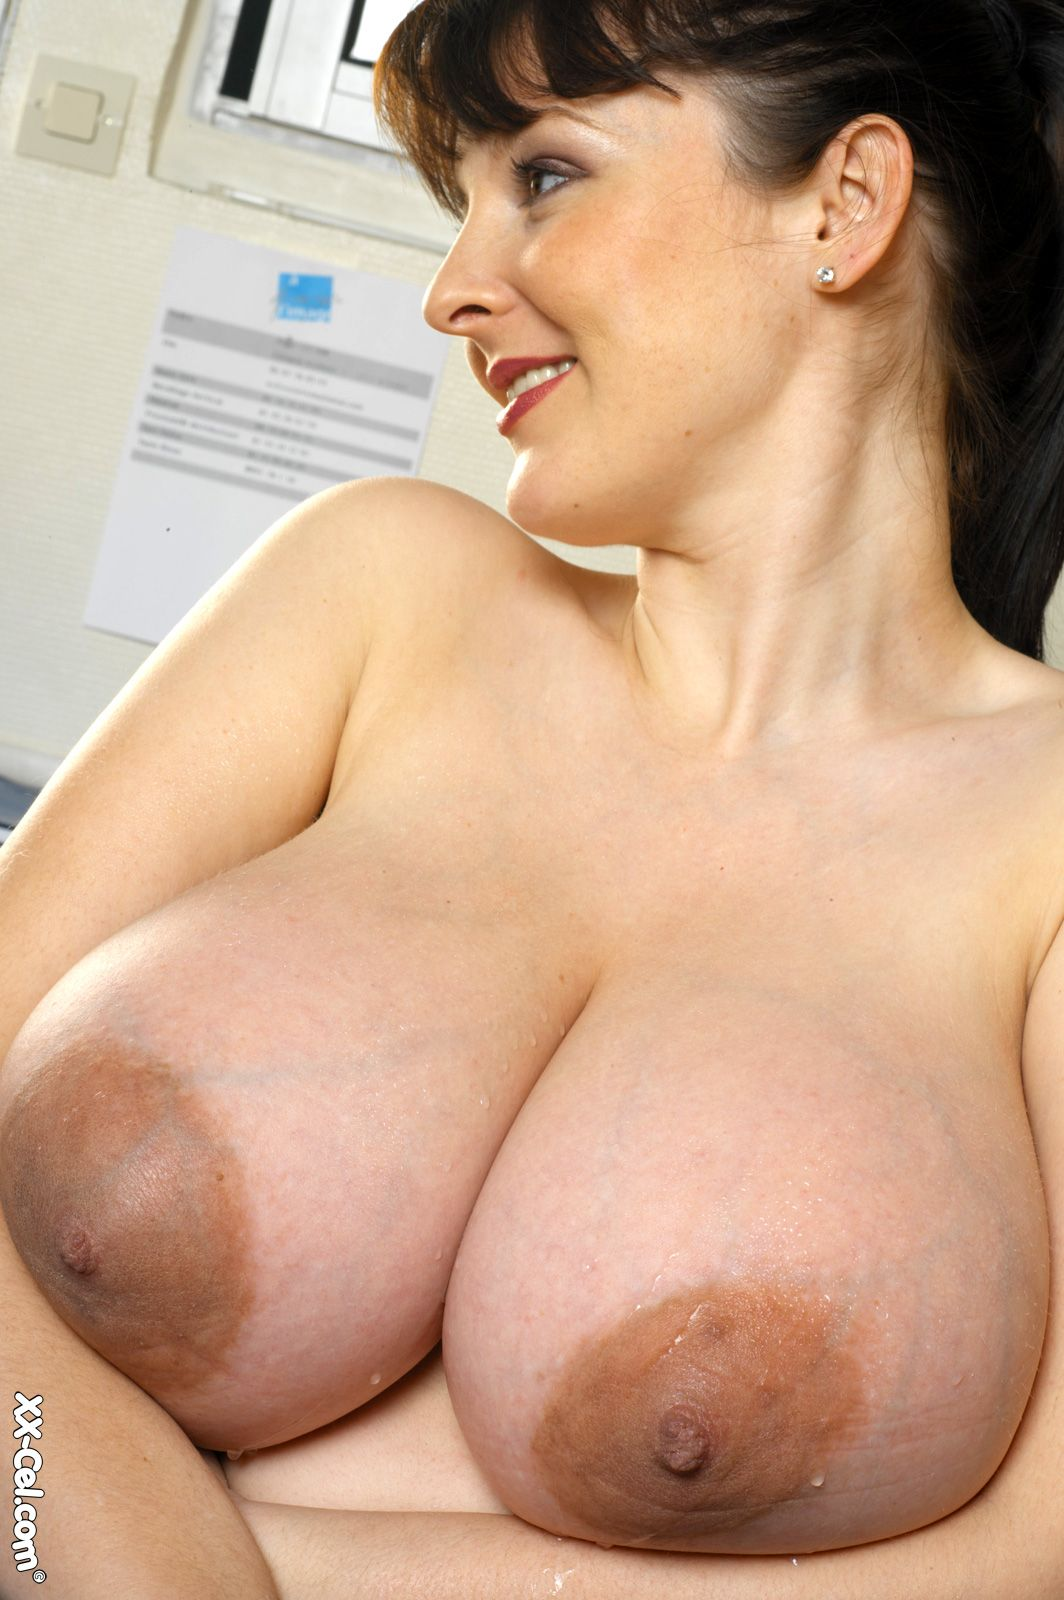 Big tit and boob porn photo bist die